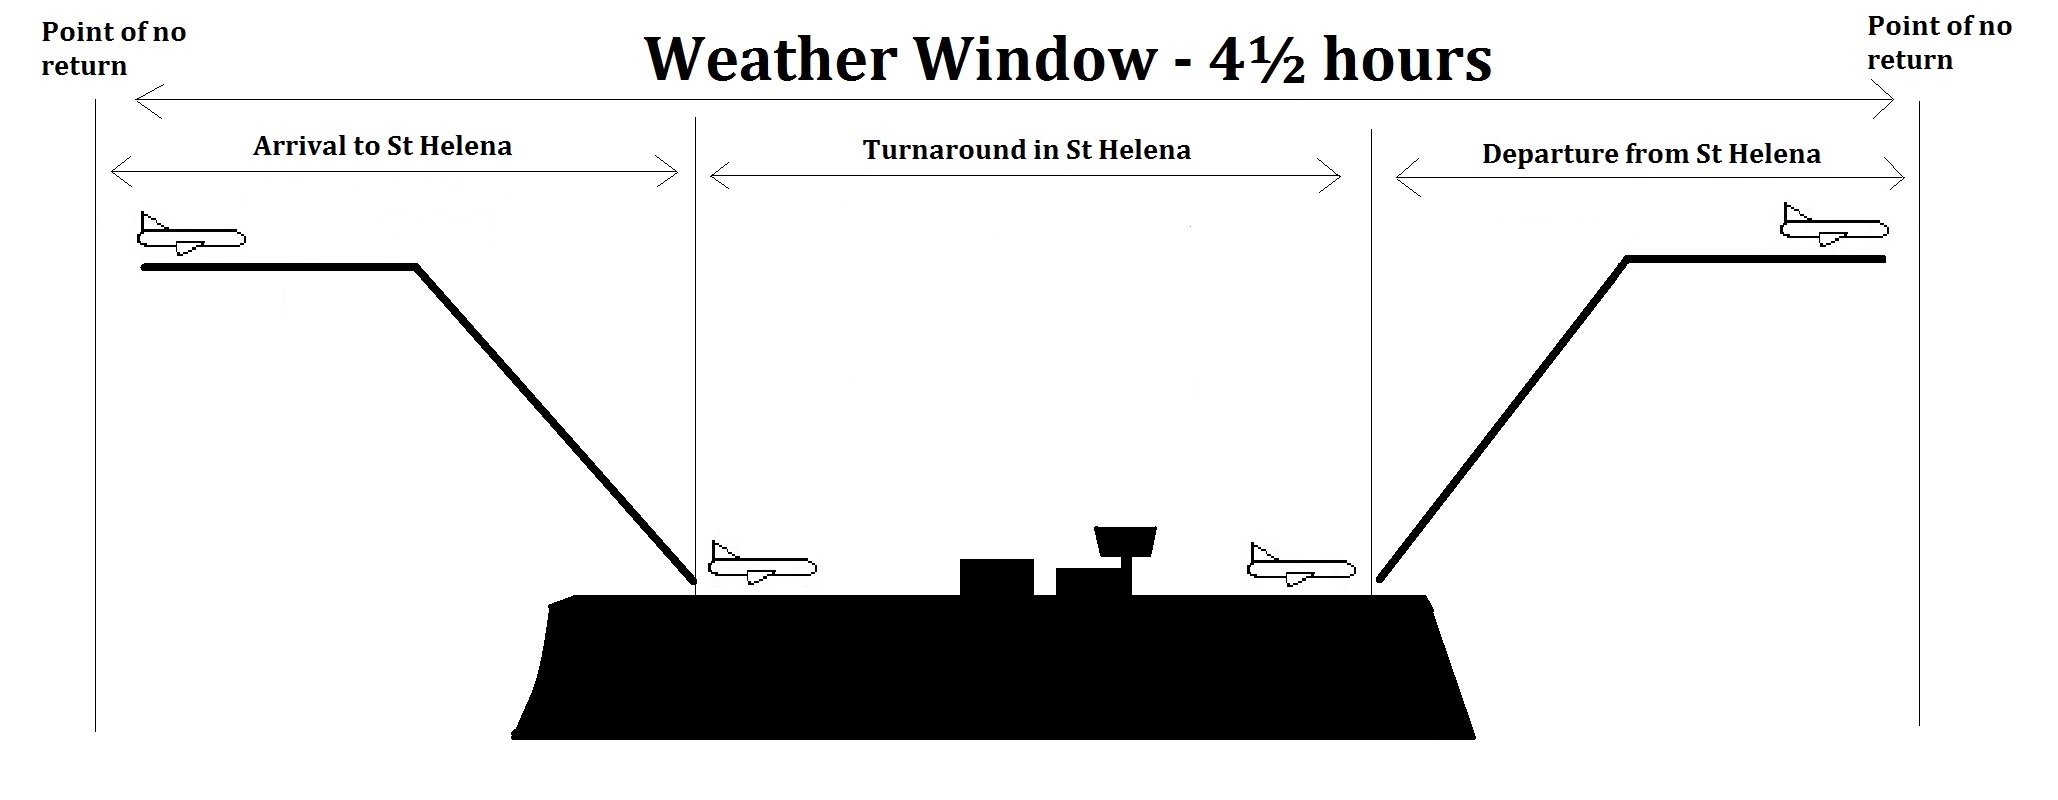 Diagram of the St Helena Airport weather window - from the point of no return coming to St Helena to the point of no return when leaving St Helena